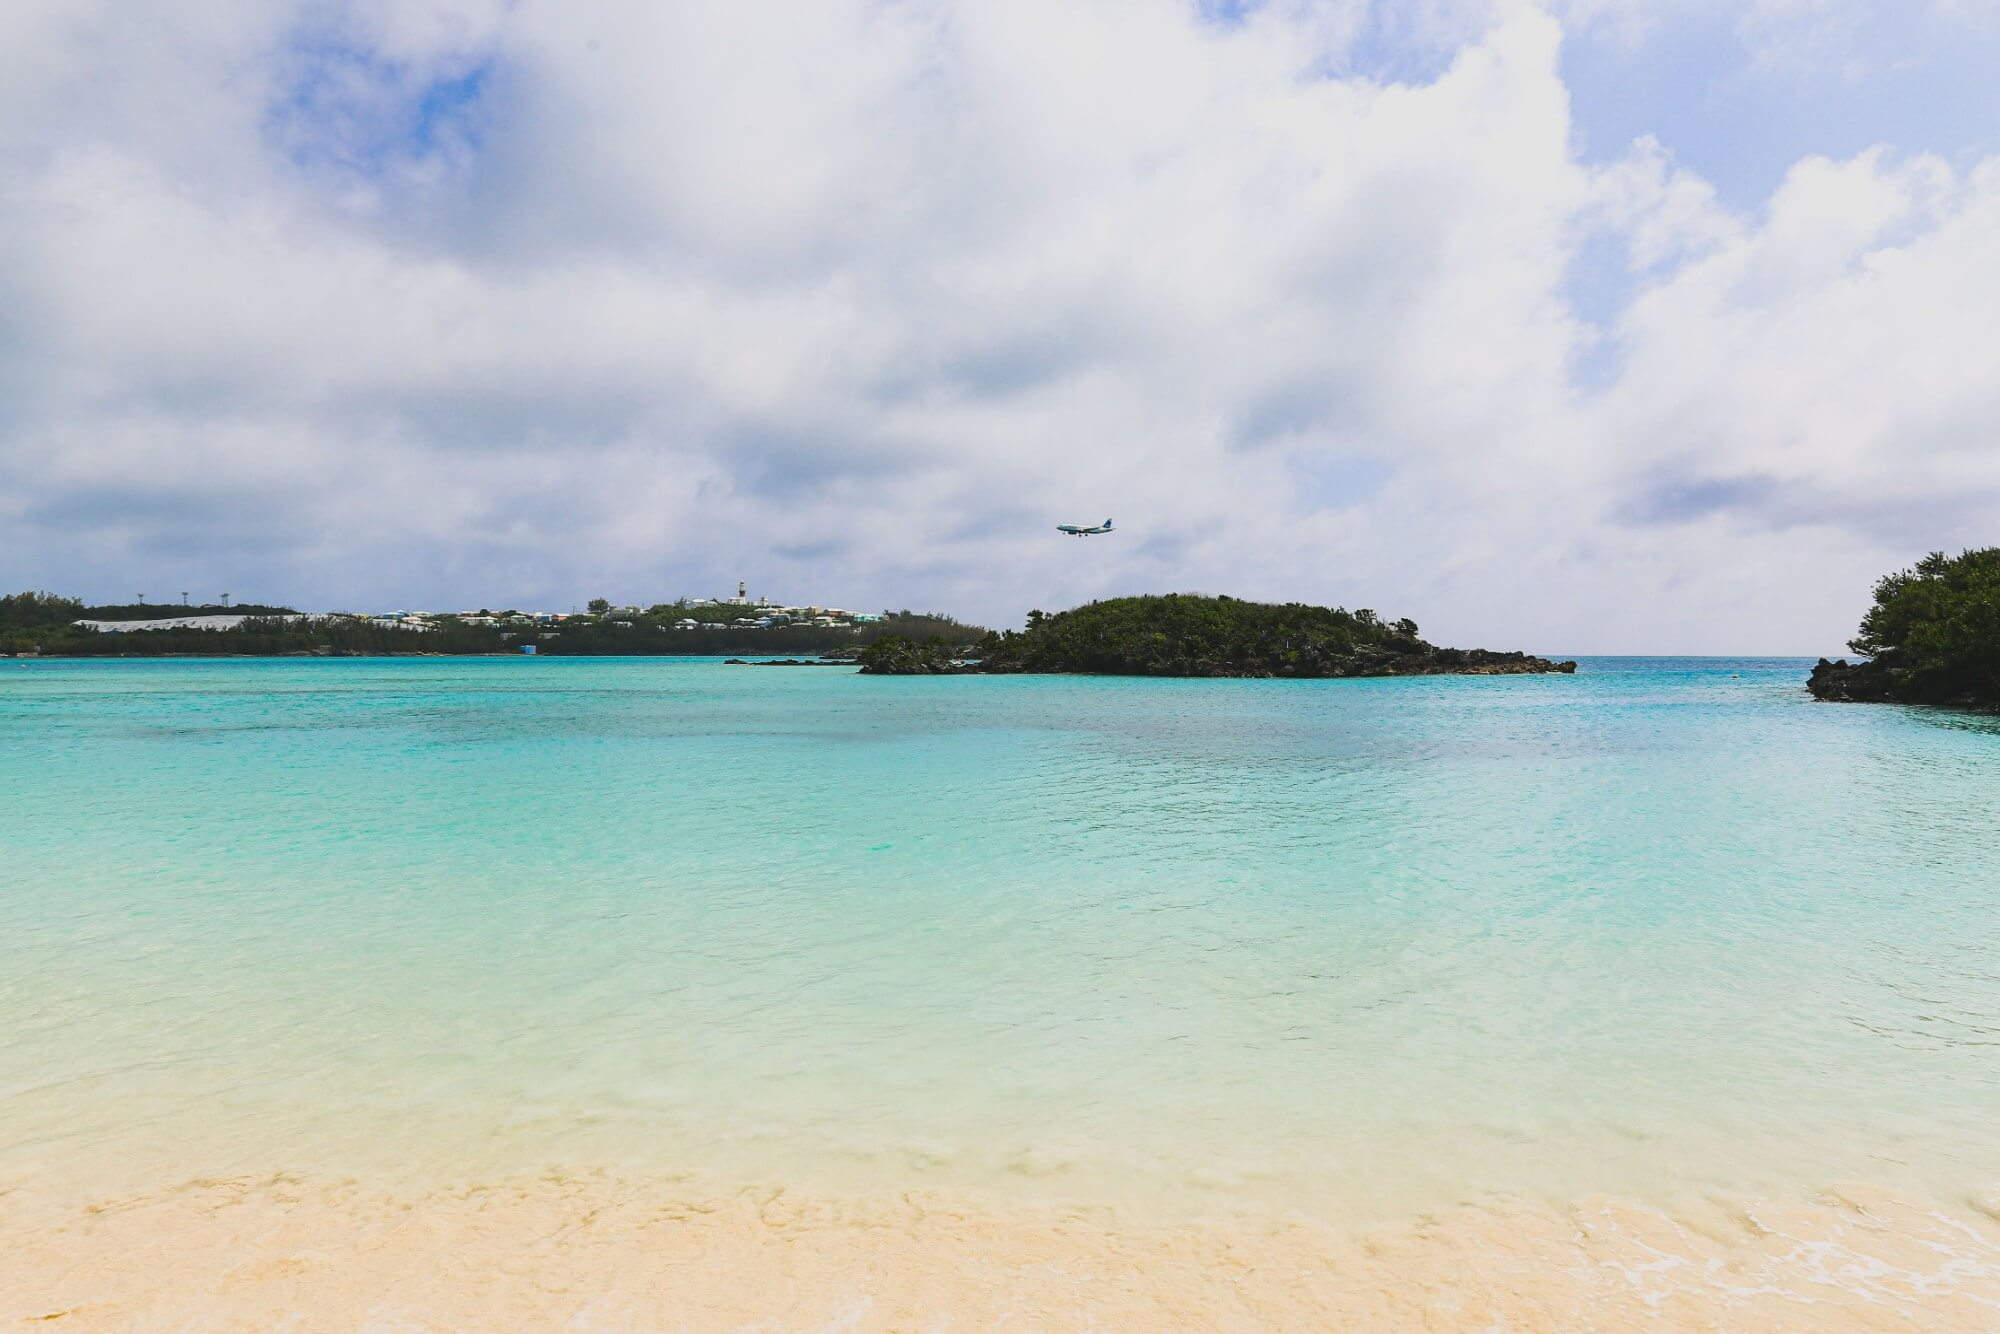 Small plane flying over tropical beach